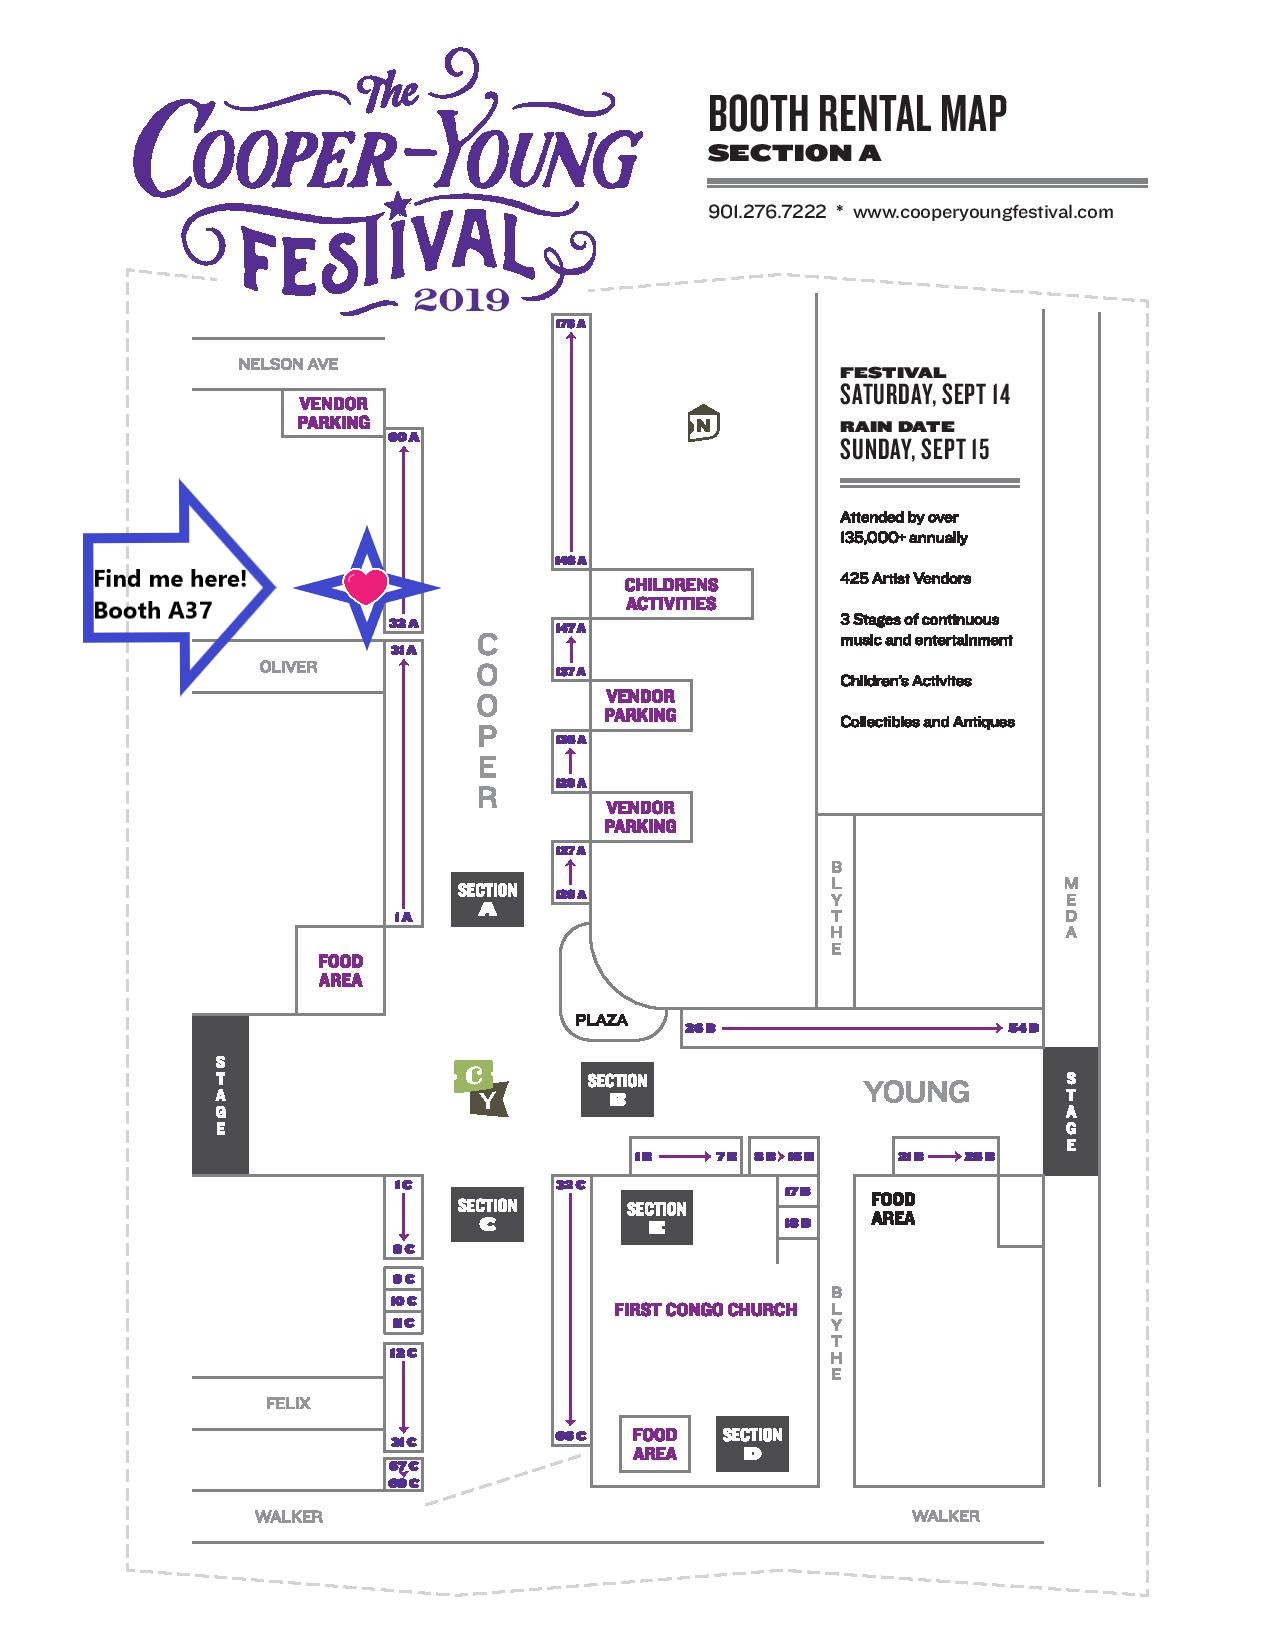 CYF_booth_map_a-4.jpg